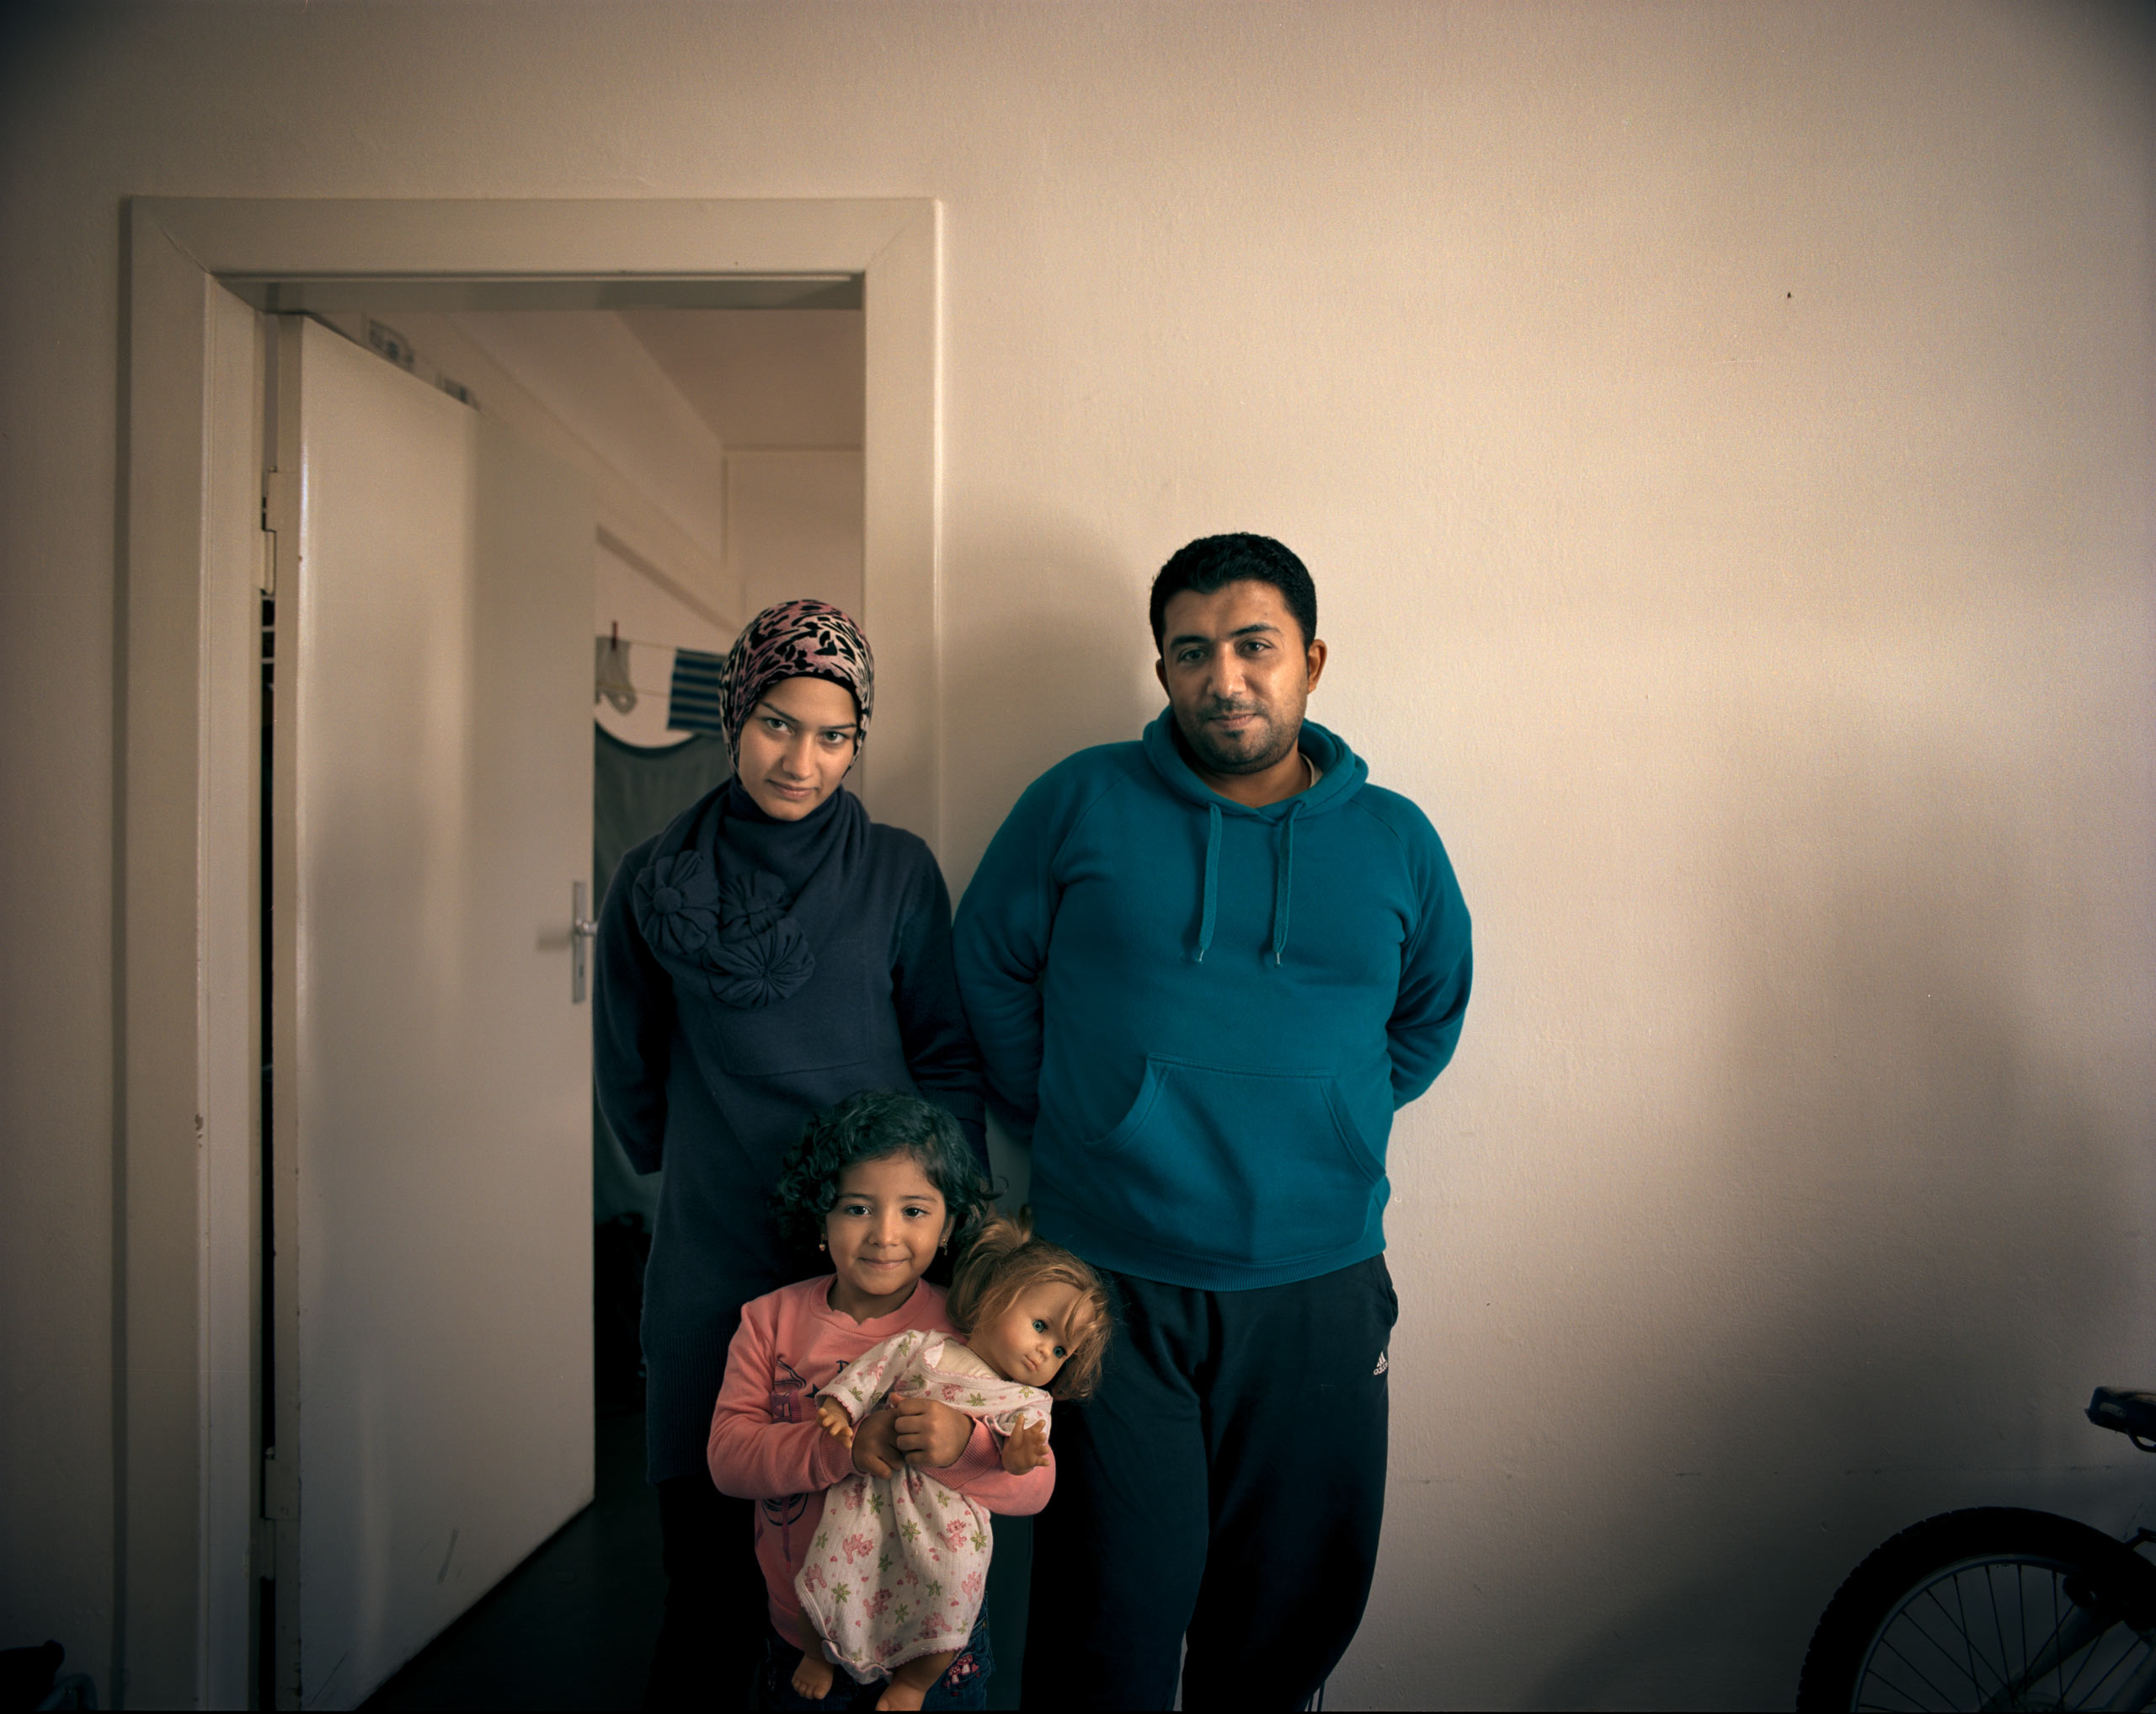 "Hasan Maaz, 32, owned a small shop in Aleppo selling cell phones, with his wife Nahed Sikkarit, 24,  a former hairdresser. They would eventually like to work in Germany—but they are still awaiting their papers, living in the Wilmersdorf refugee shelter in Berlin.                                                               In the meantime, they are just grateful to have found sanctuary. ""We thank Allah that we are finished with the rockets and bombs and are safe,"" says Maaz. Their daughter Mayyar Alhelwa has something to smile about too: after losing her first doll on the boat to Greece, she now has a new one."